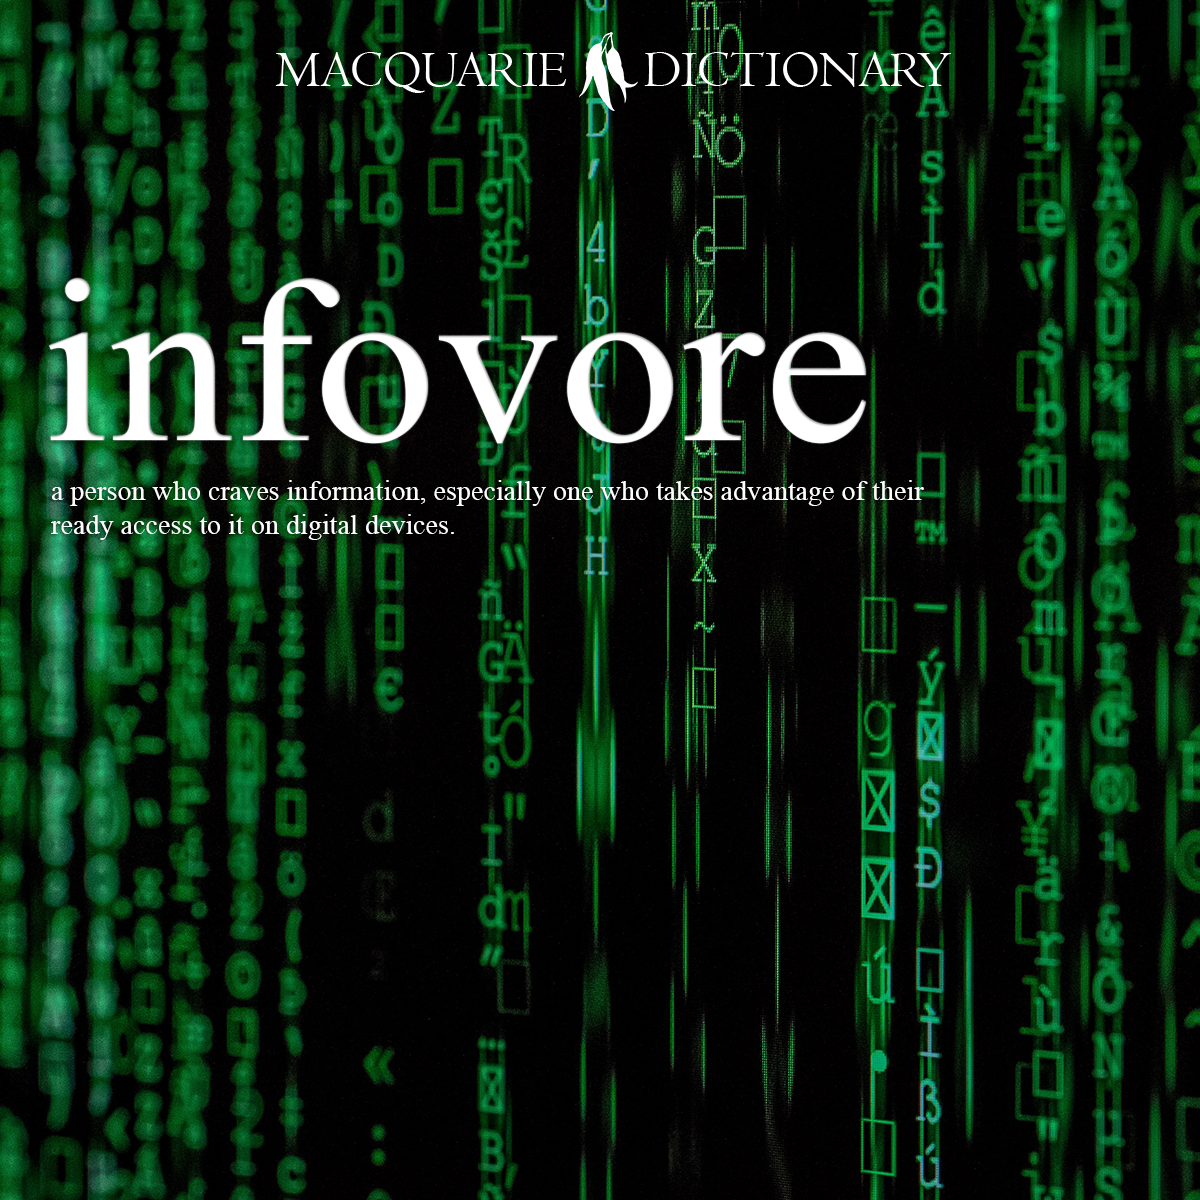 infovore - a person who craves information, especially one who takes advantage of their ready access to it on digital devices.